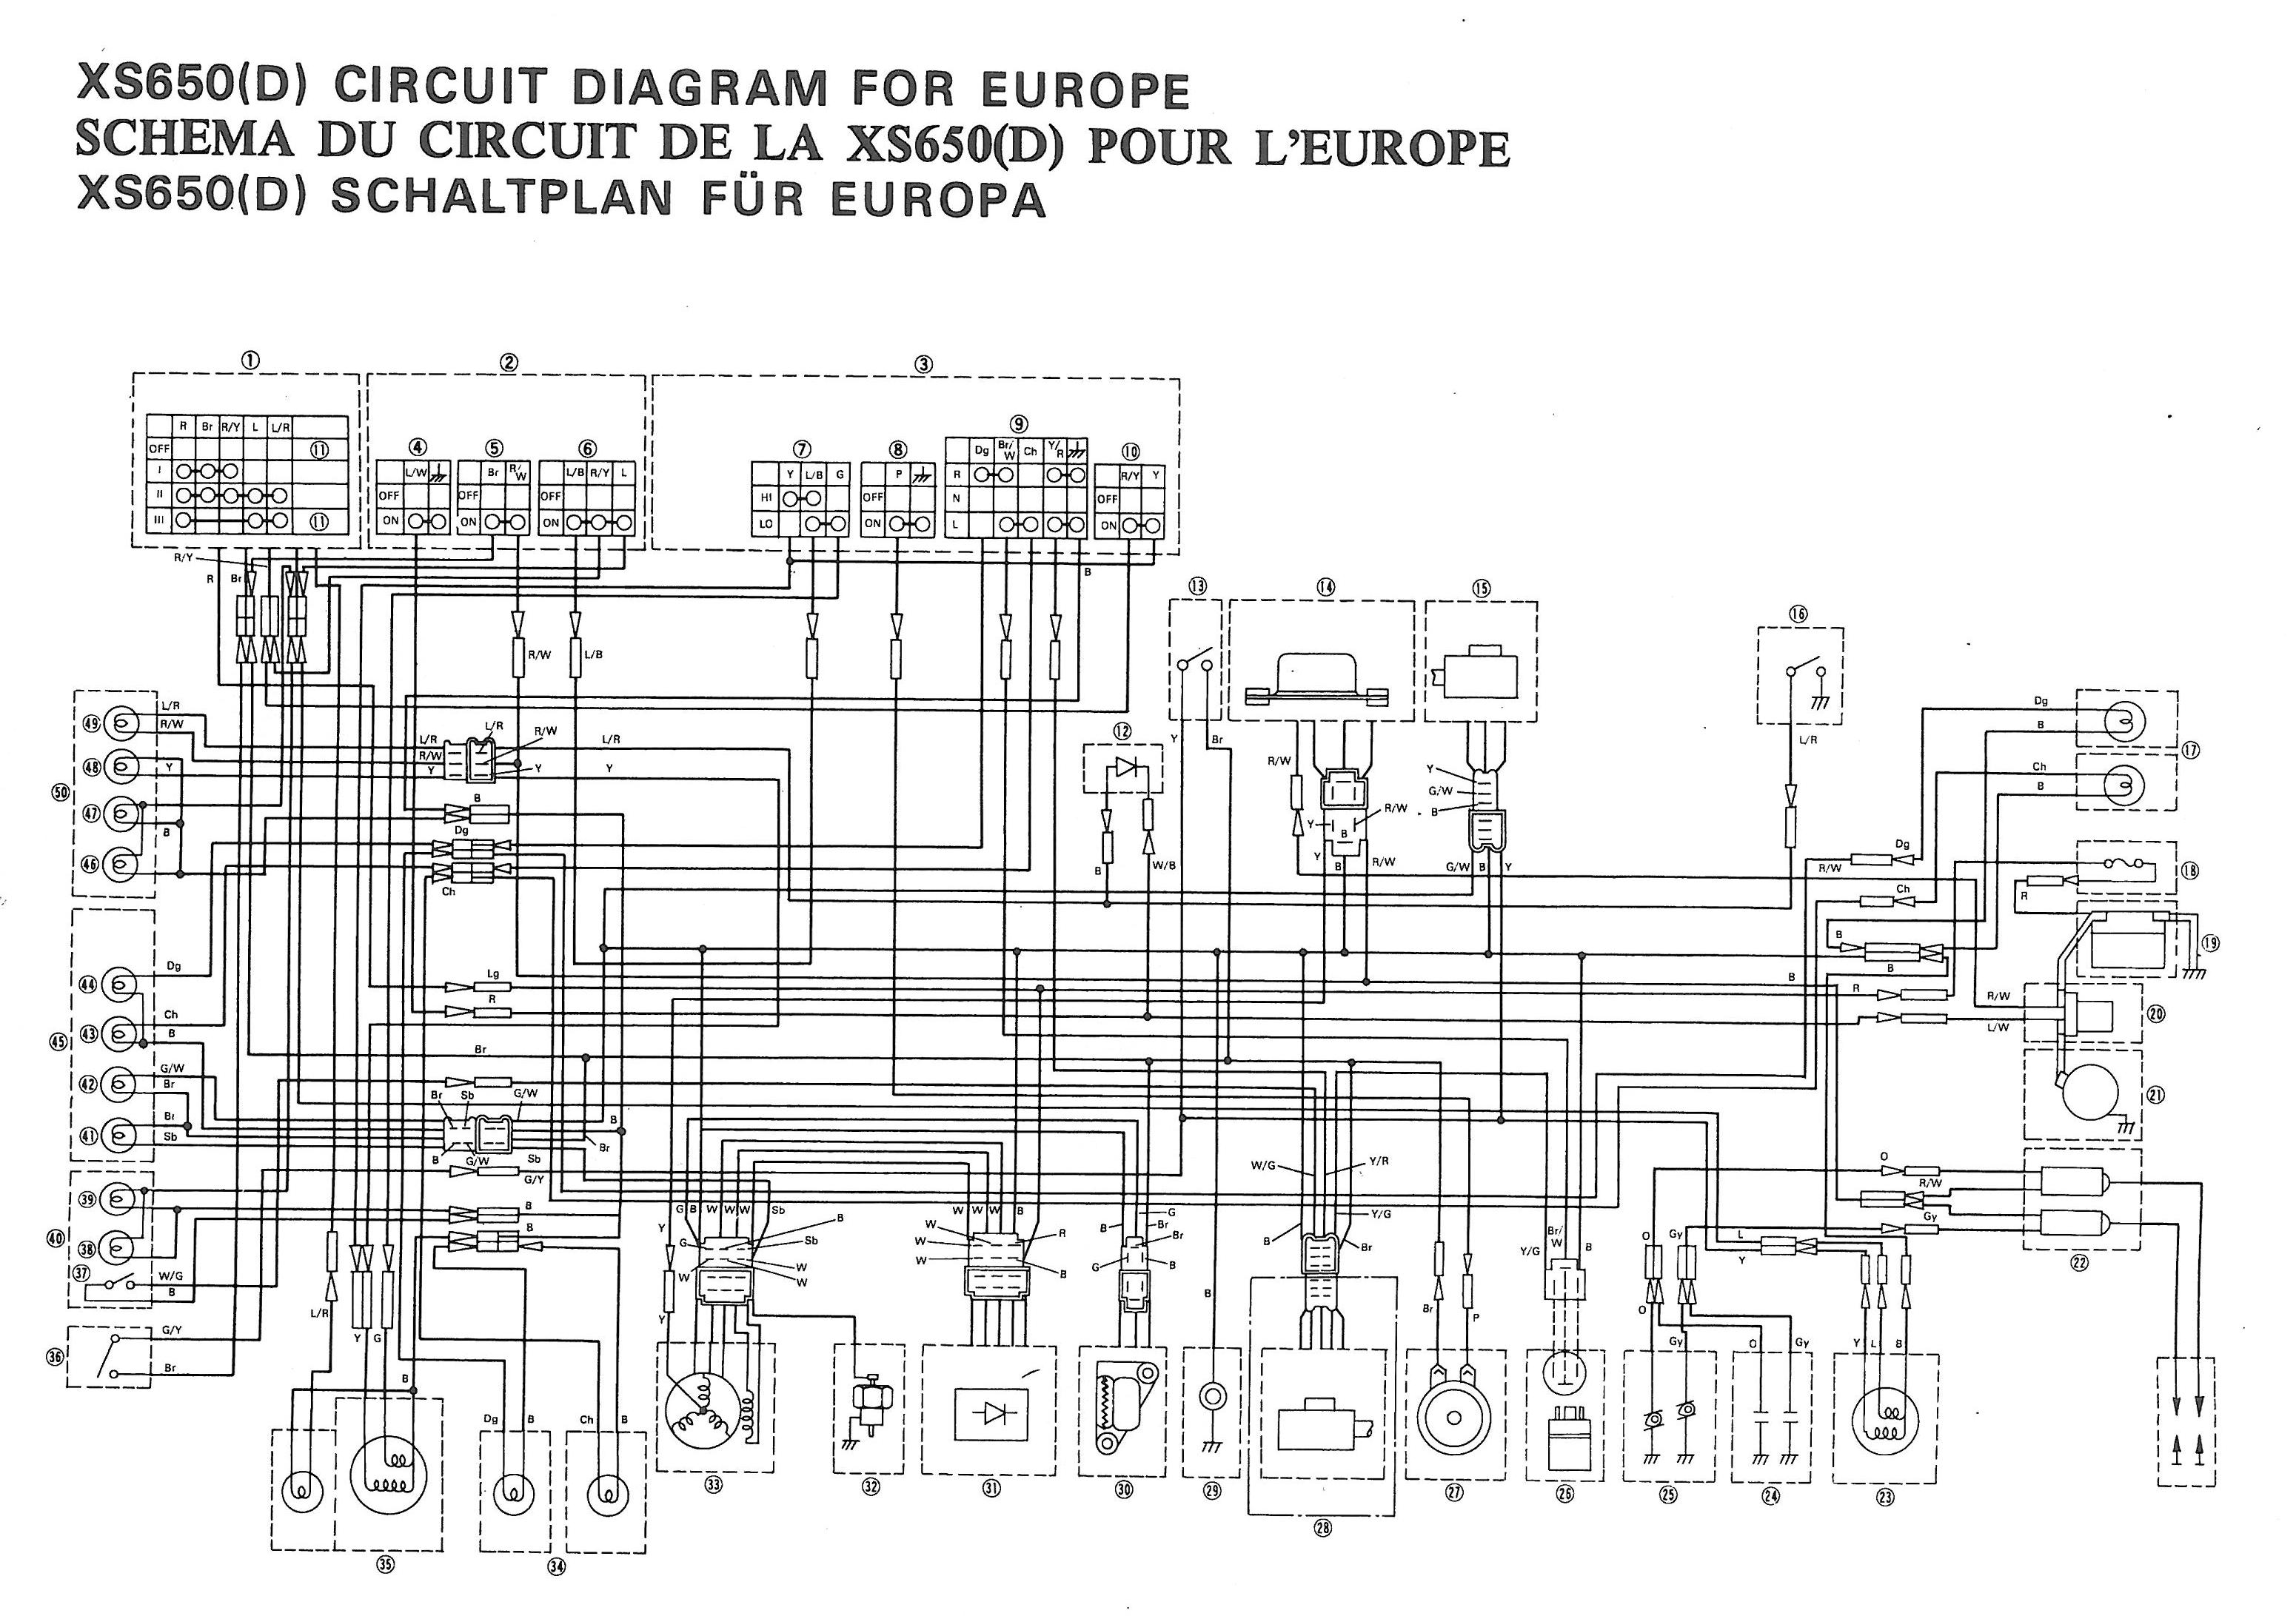 77 xs d wiring europe xs650 77 xs d wiring diagram thexscafe XS2 Bow String at edmiracle.co